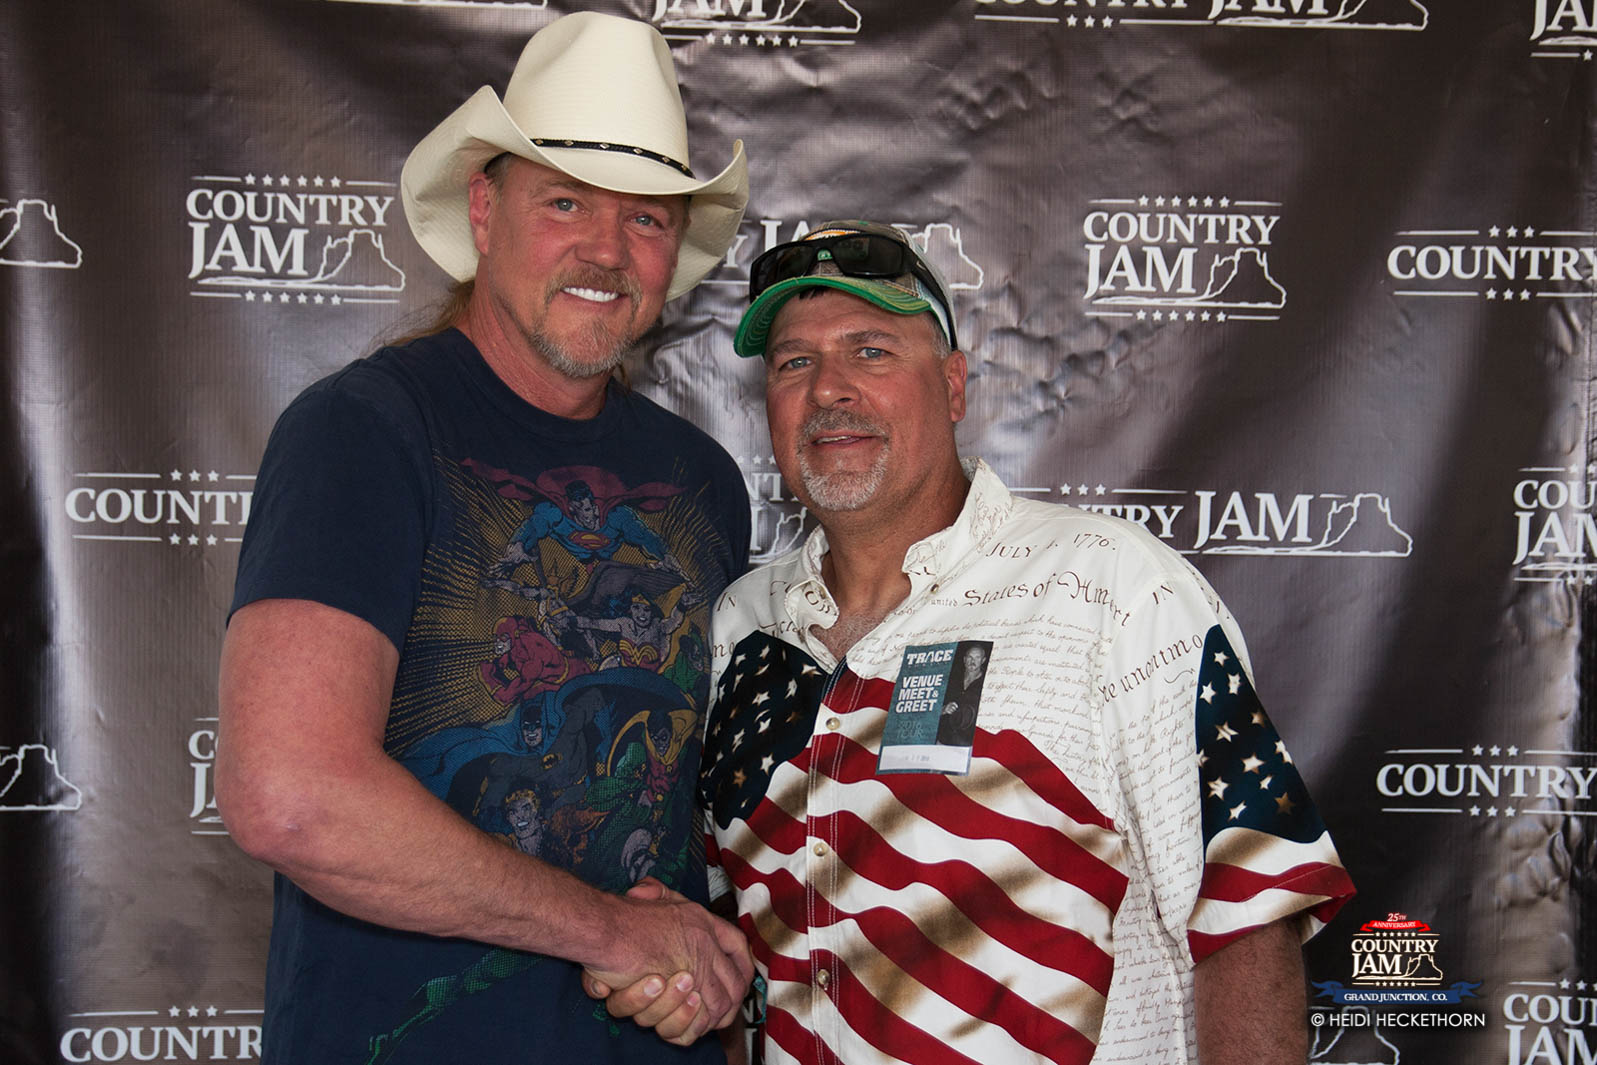 Trace adkins meet greet photos at country jam 2016 country jam kristyandbryce Choice Image